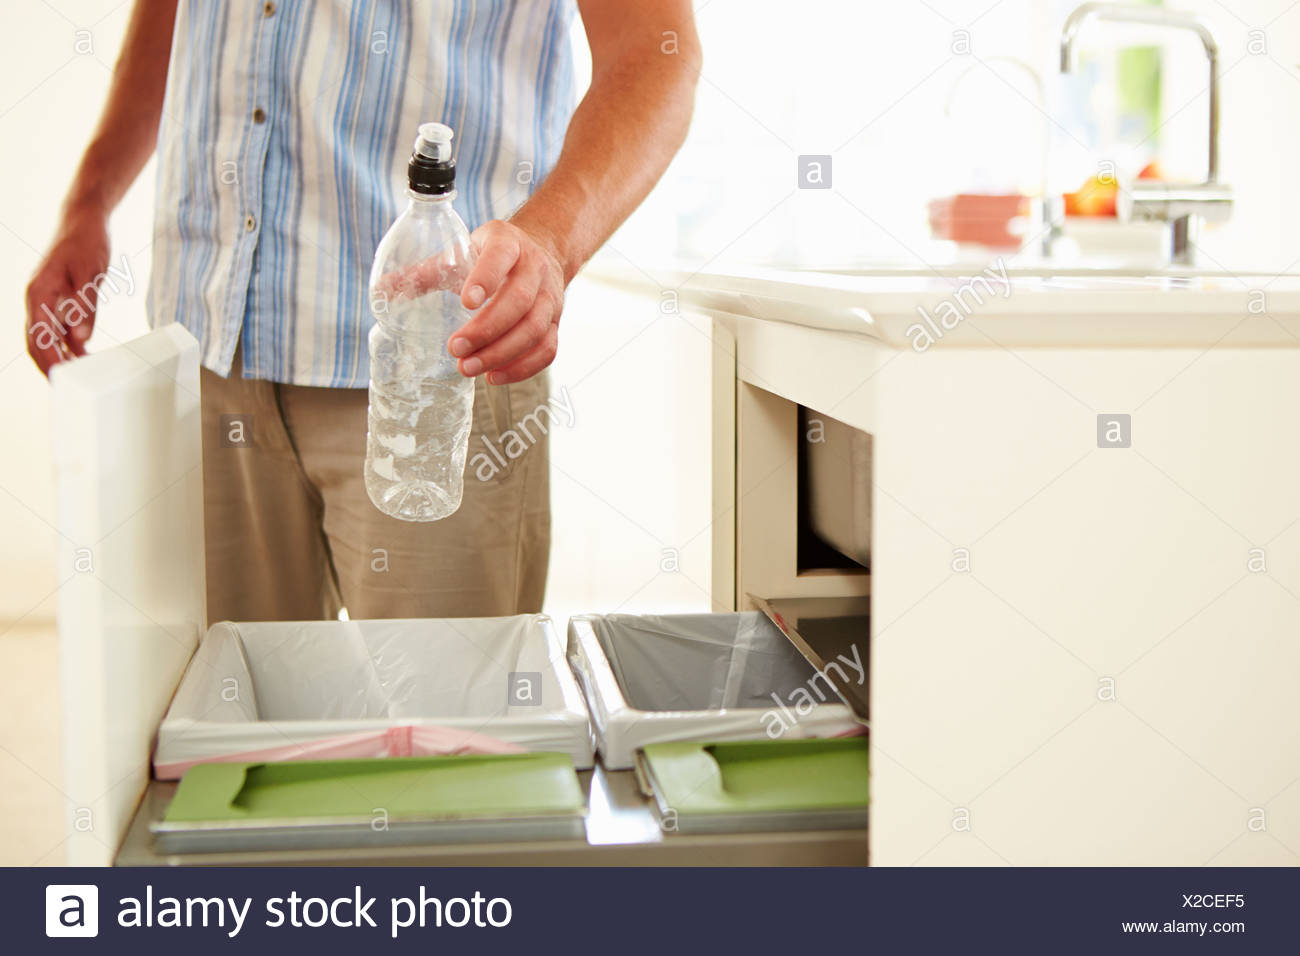 Close Up Of Man Recycling Kitchen Waste In Bin - Stock Image